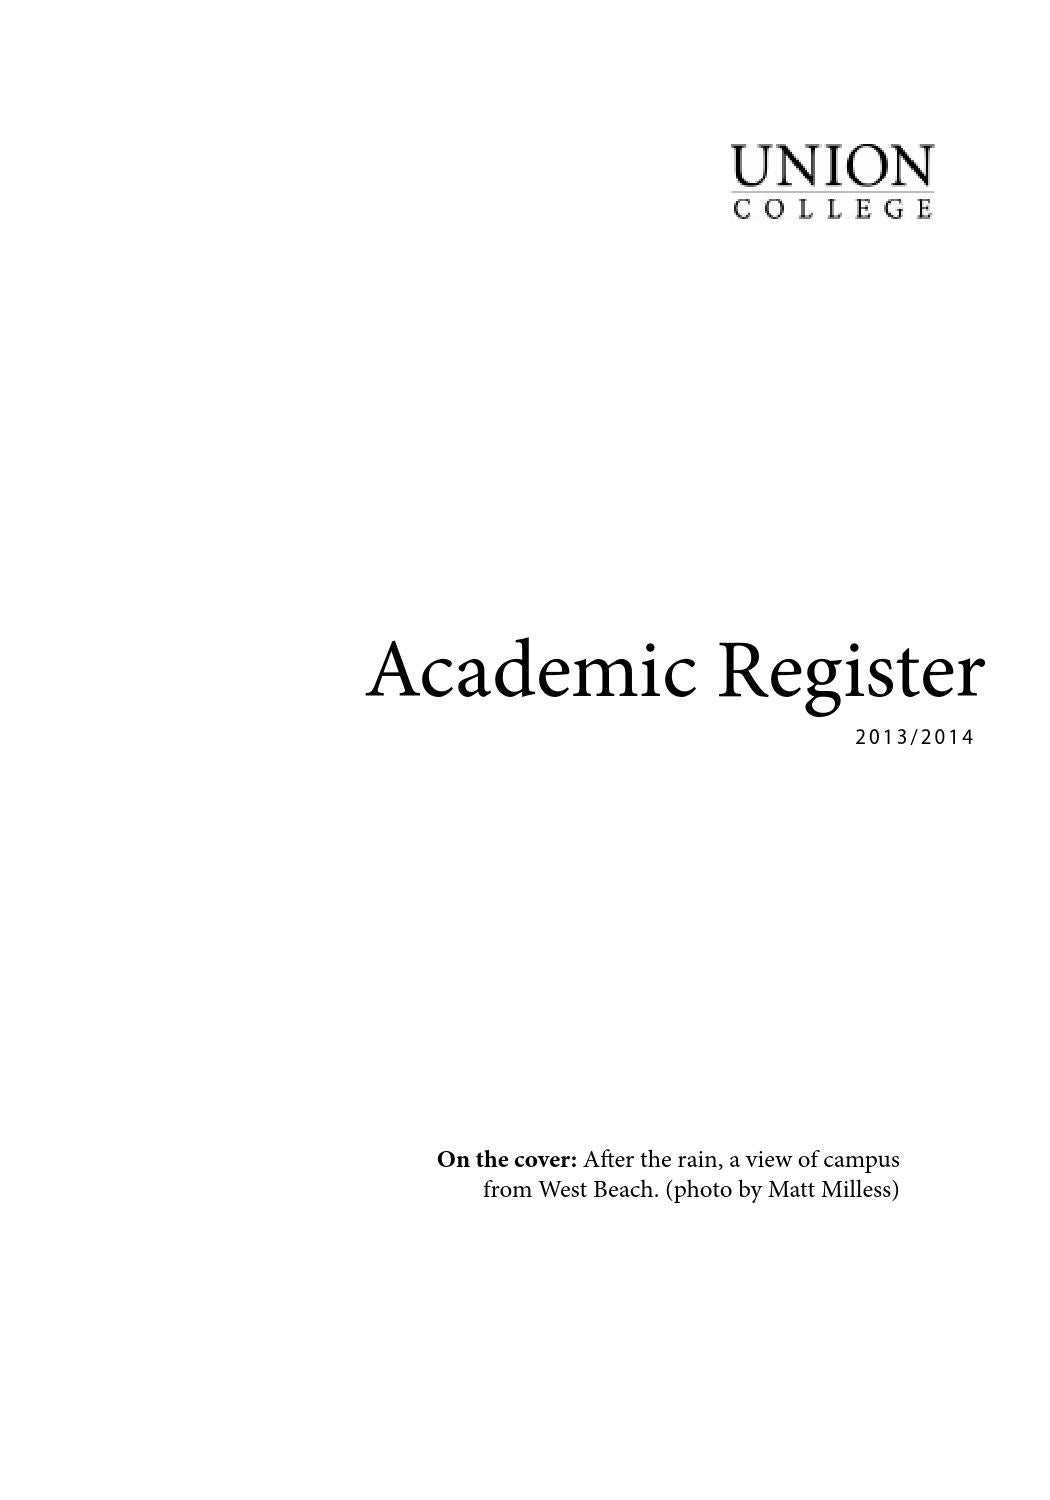 Academic Register 2013 14 By Union College Issuu